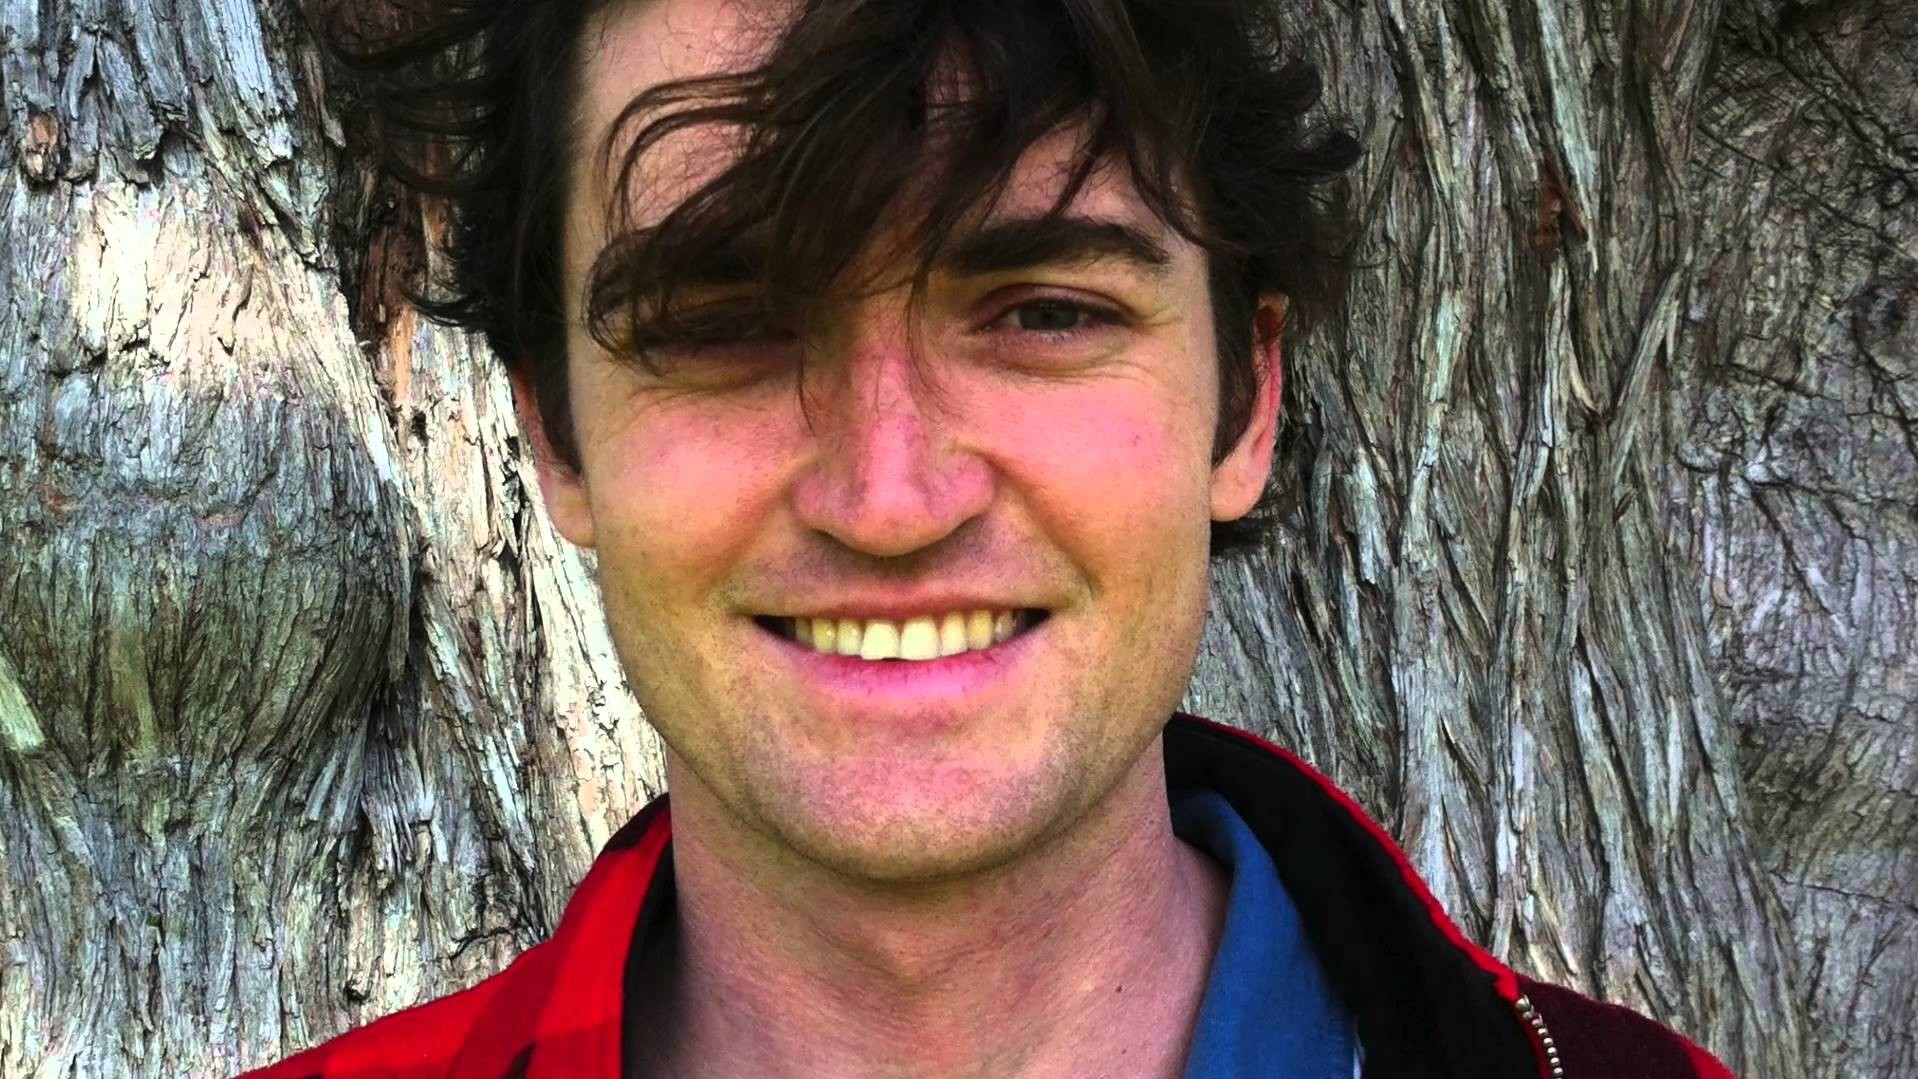 The Feds' Point-by-Point Demolition of Silk Road Founder Ross Ulbricht's Defense